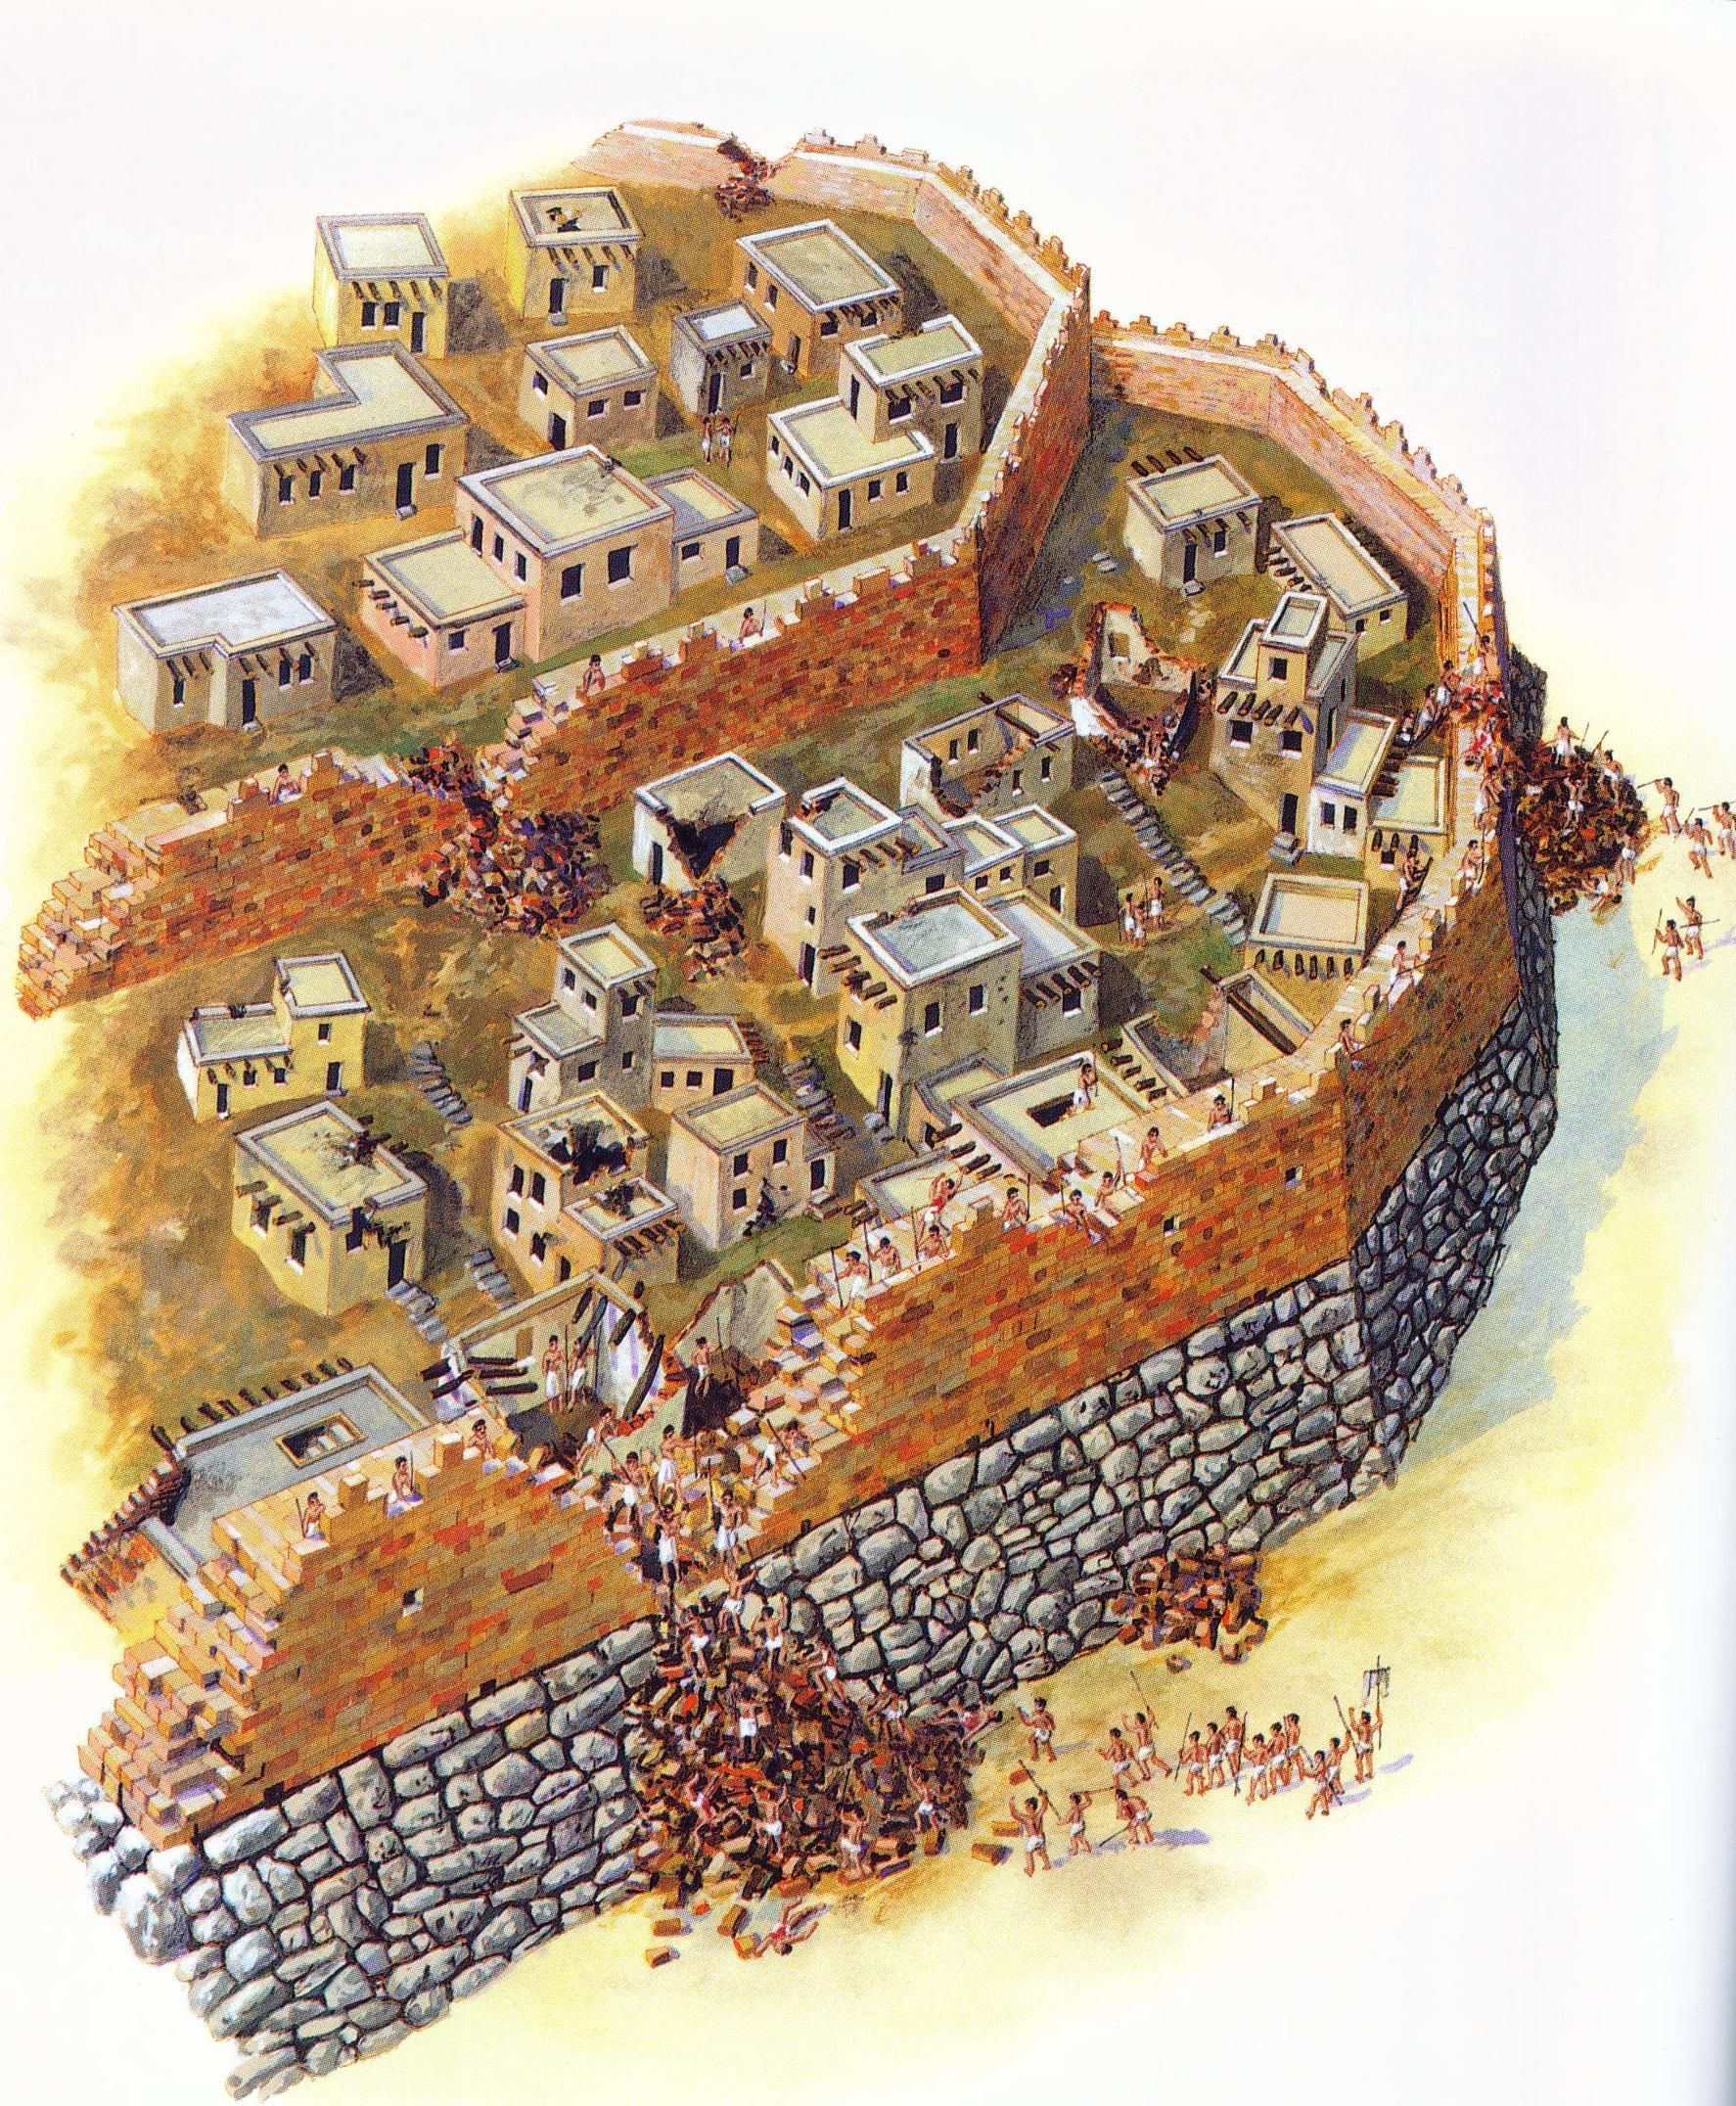 JERICHO, ISRAEL - and the walls came down